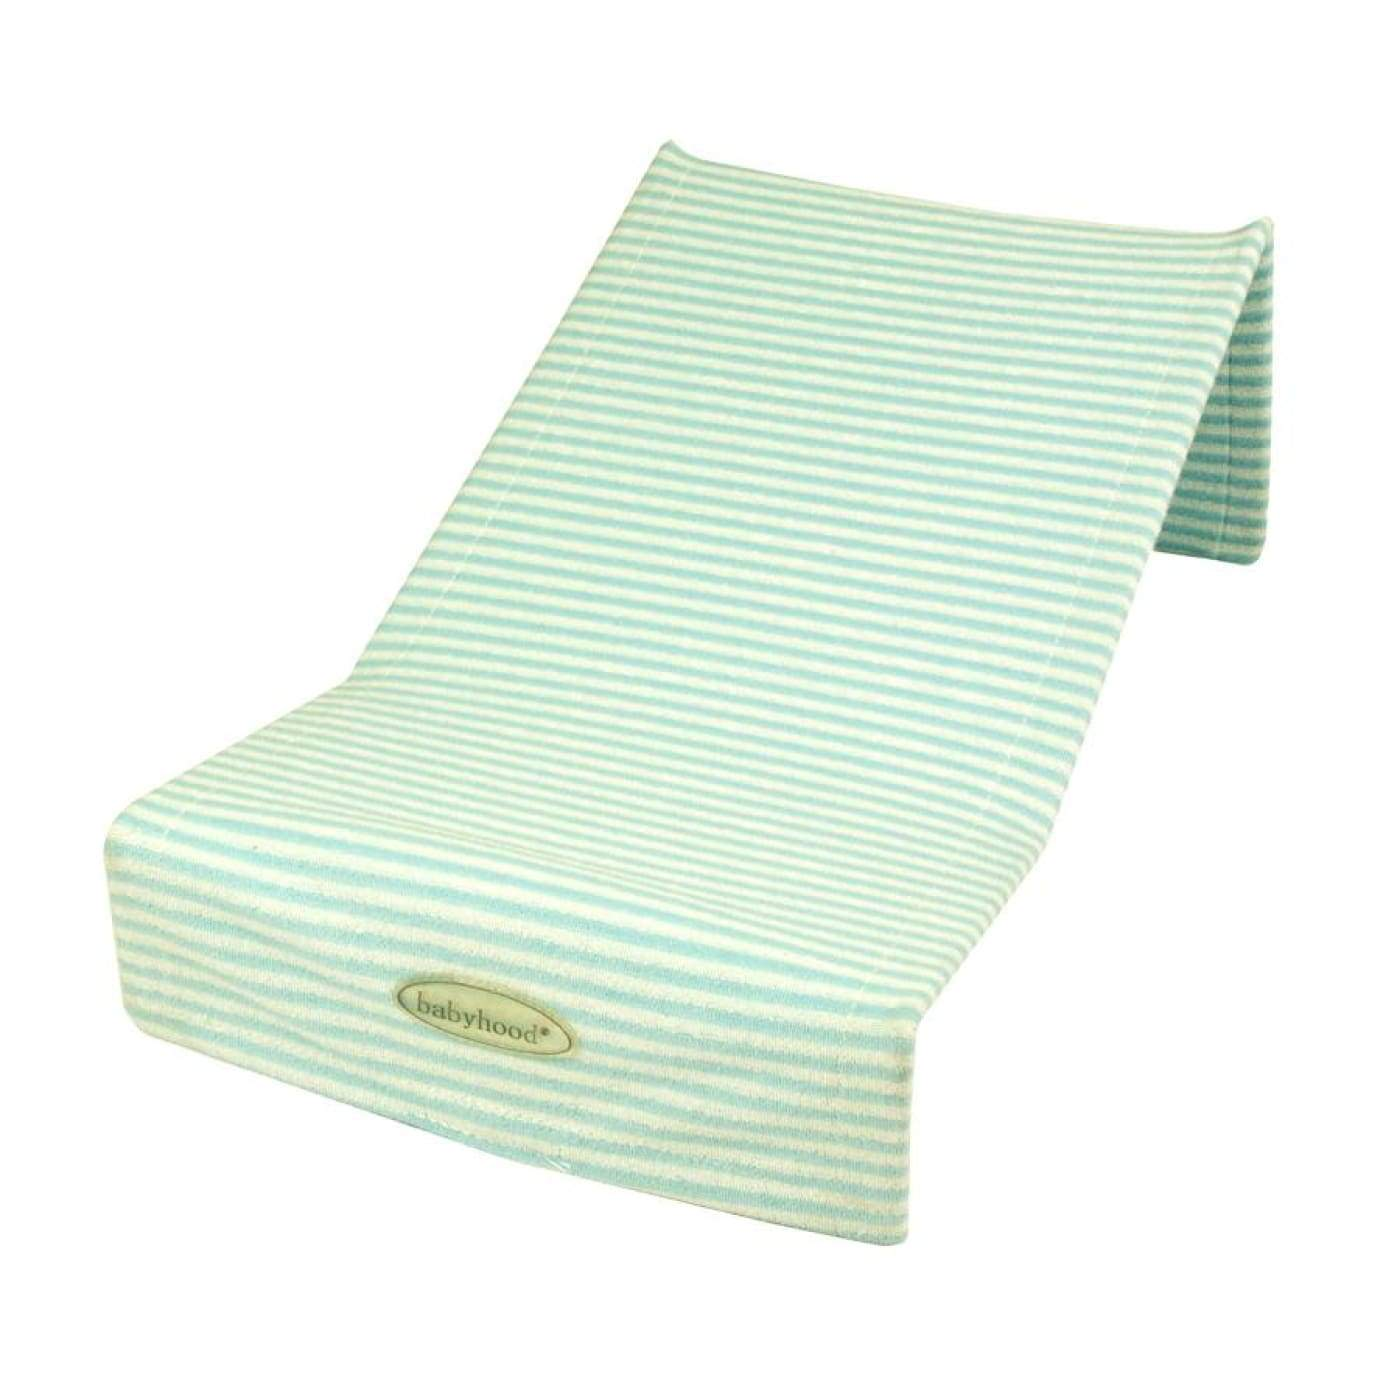 Babyhood Bath Support Towelling - Turquoise/White Stripes - BATHTIME & CHANGING - BATH SUPPORTS/SEATS